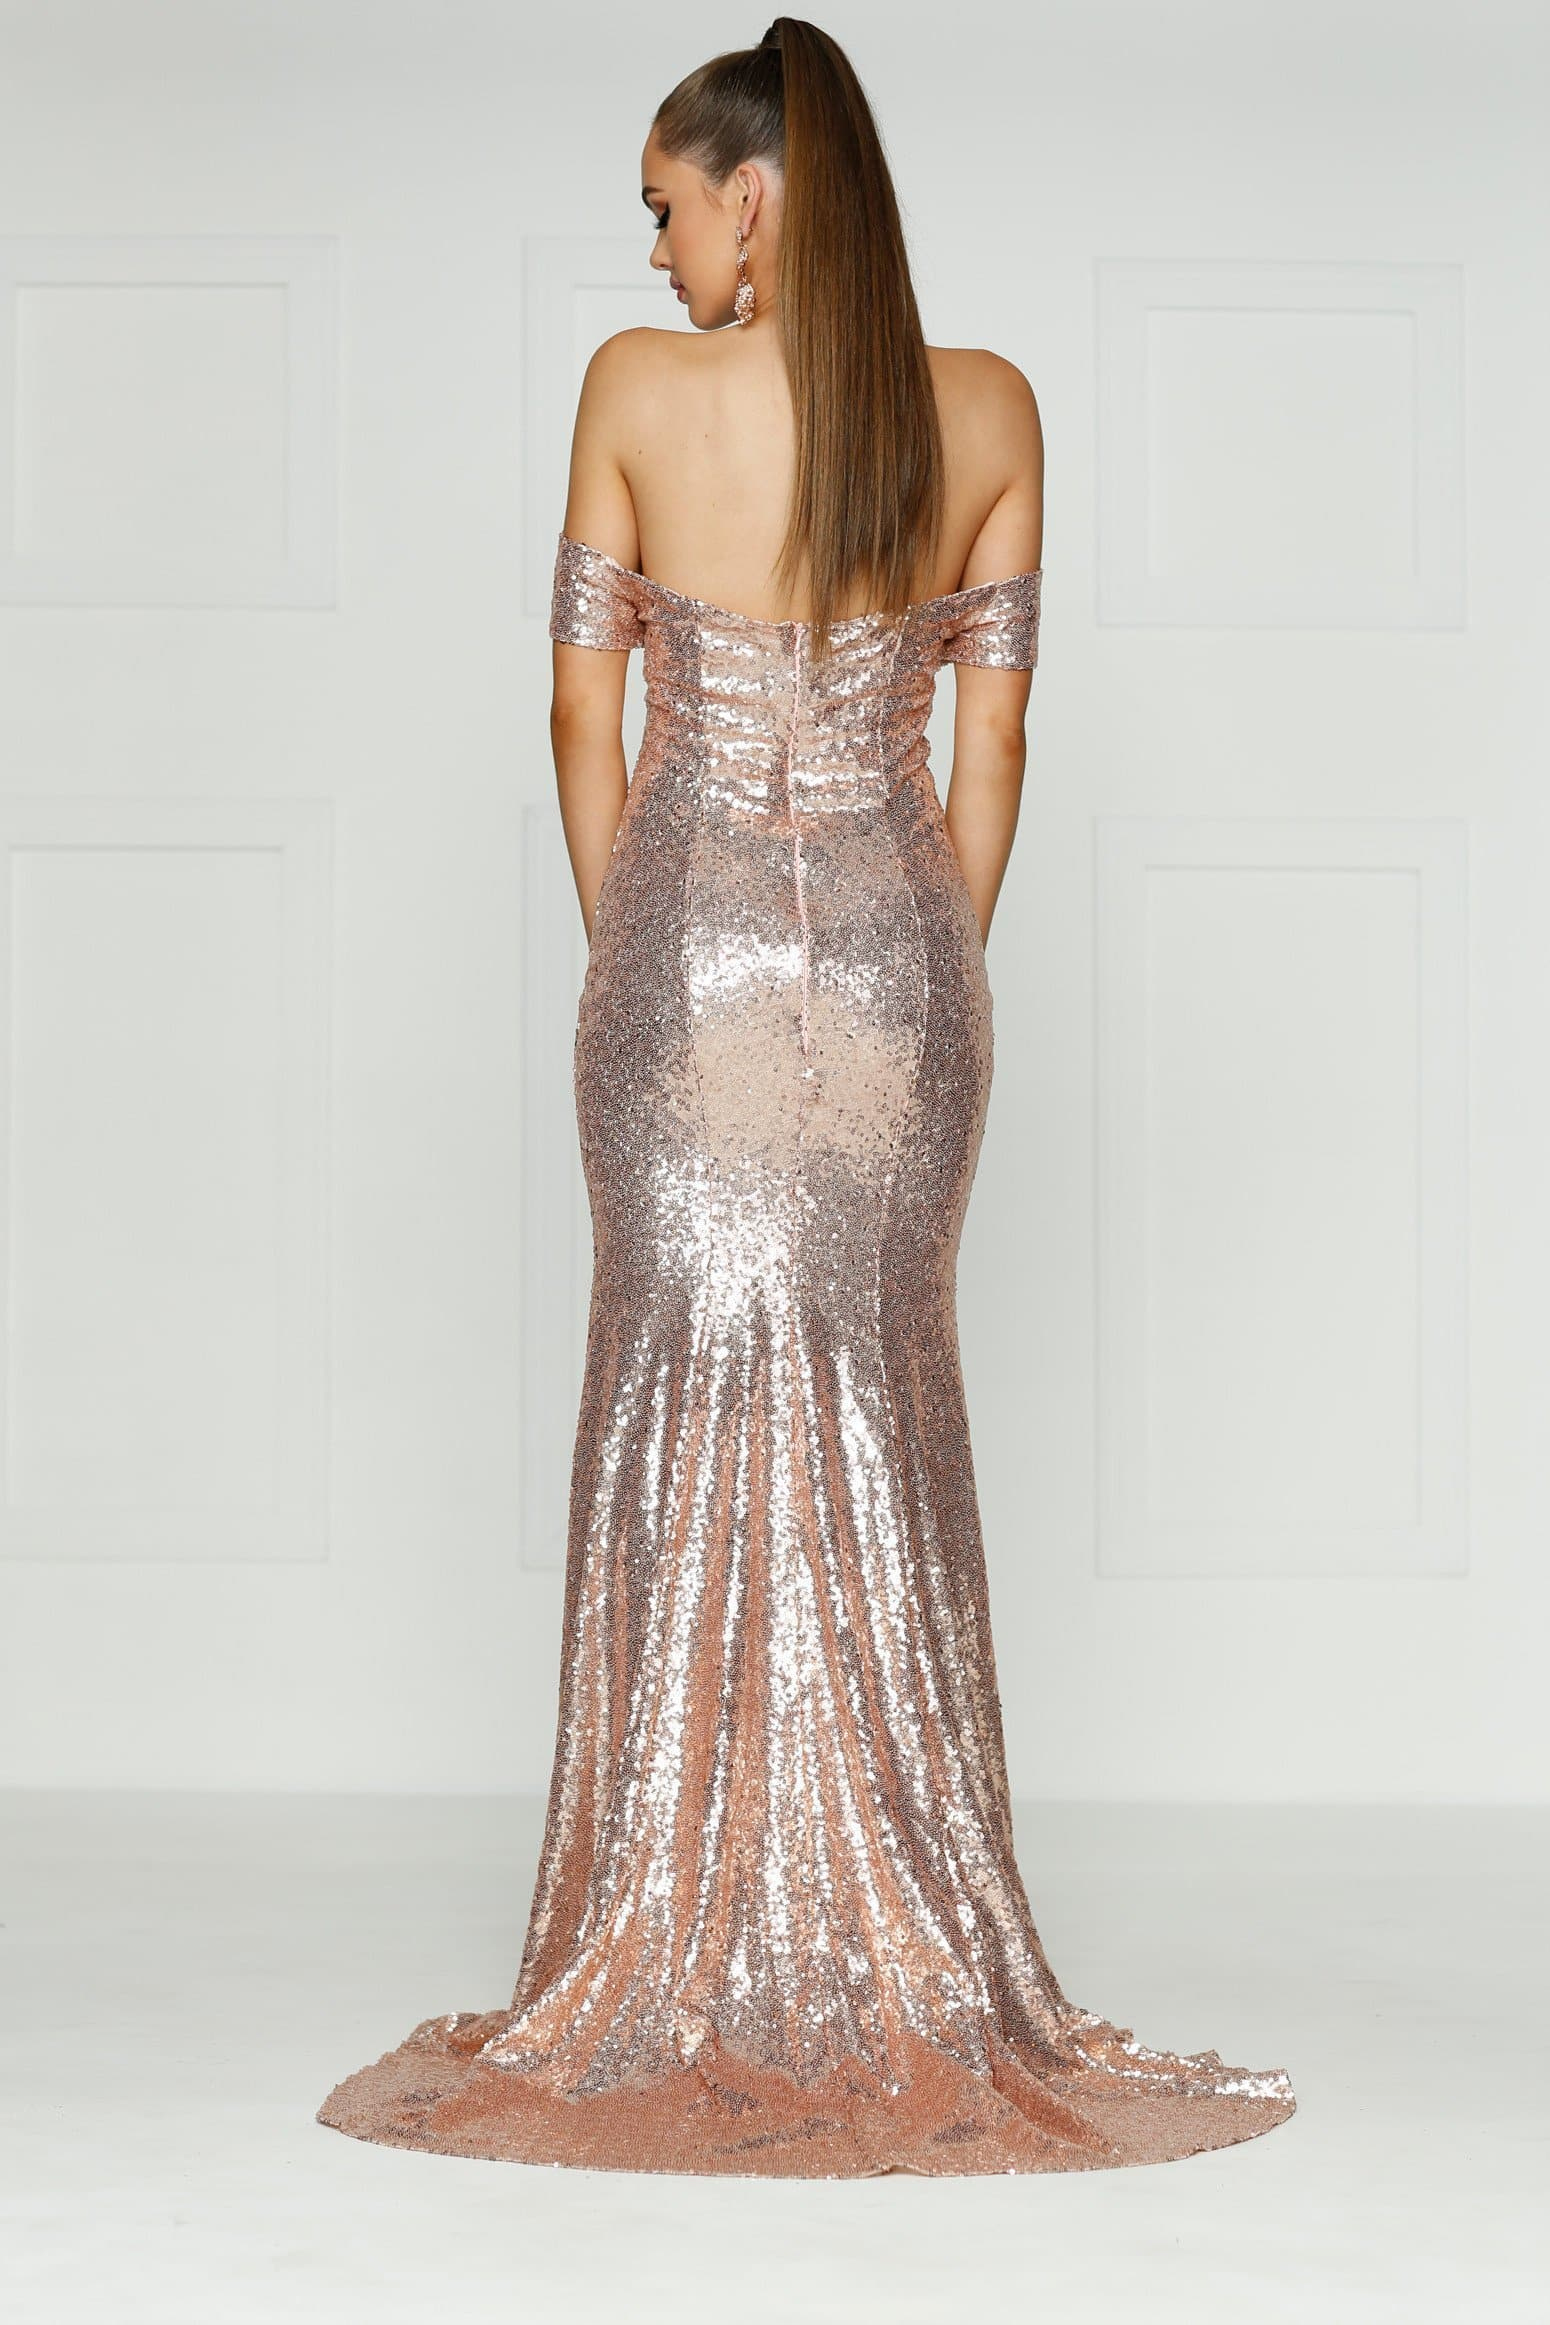 A&N Kim - Rose Gold Off-Shoulder Dress with Mermaid Train